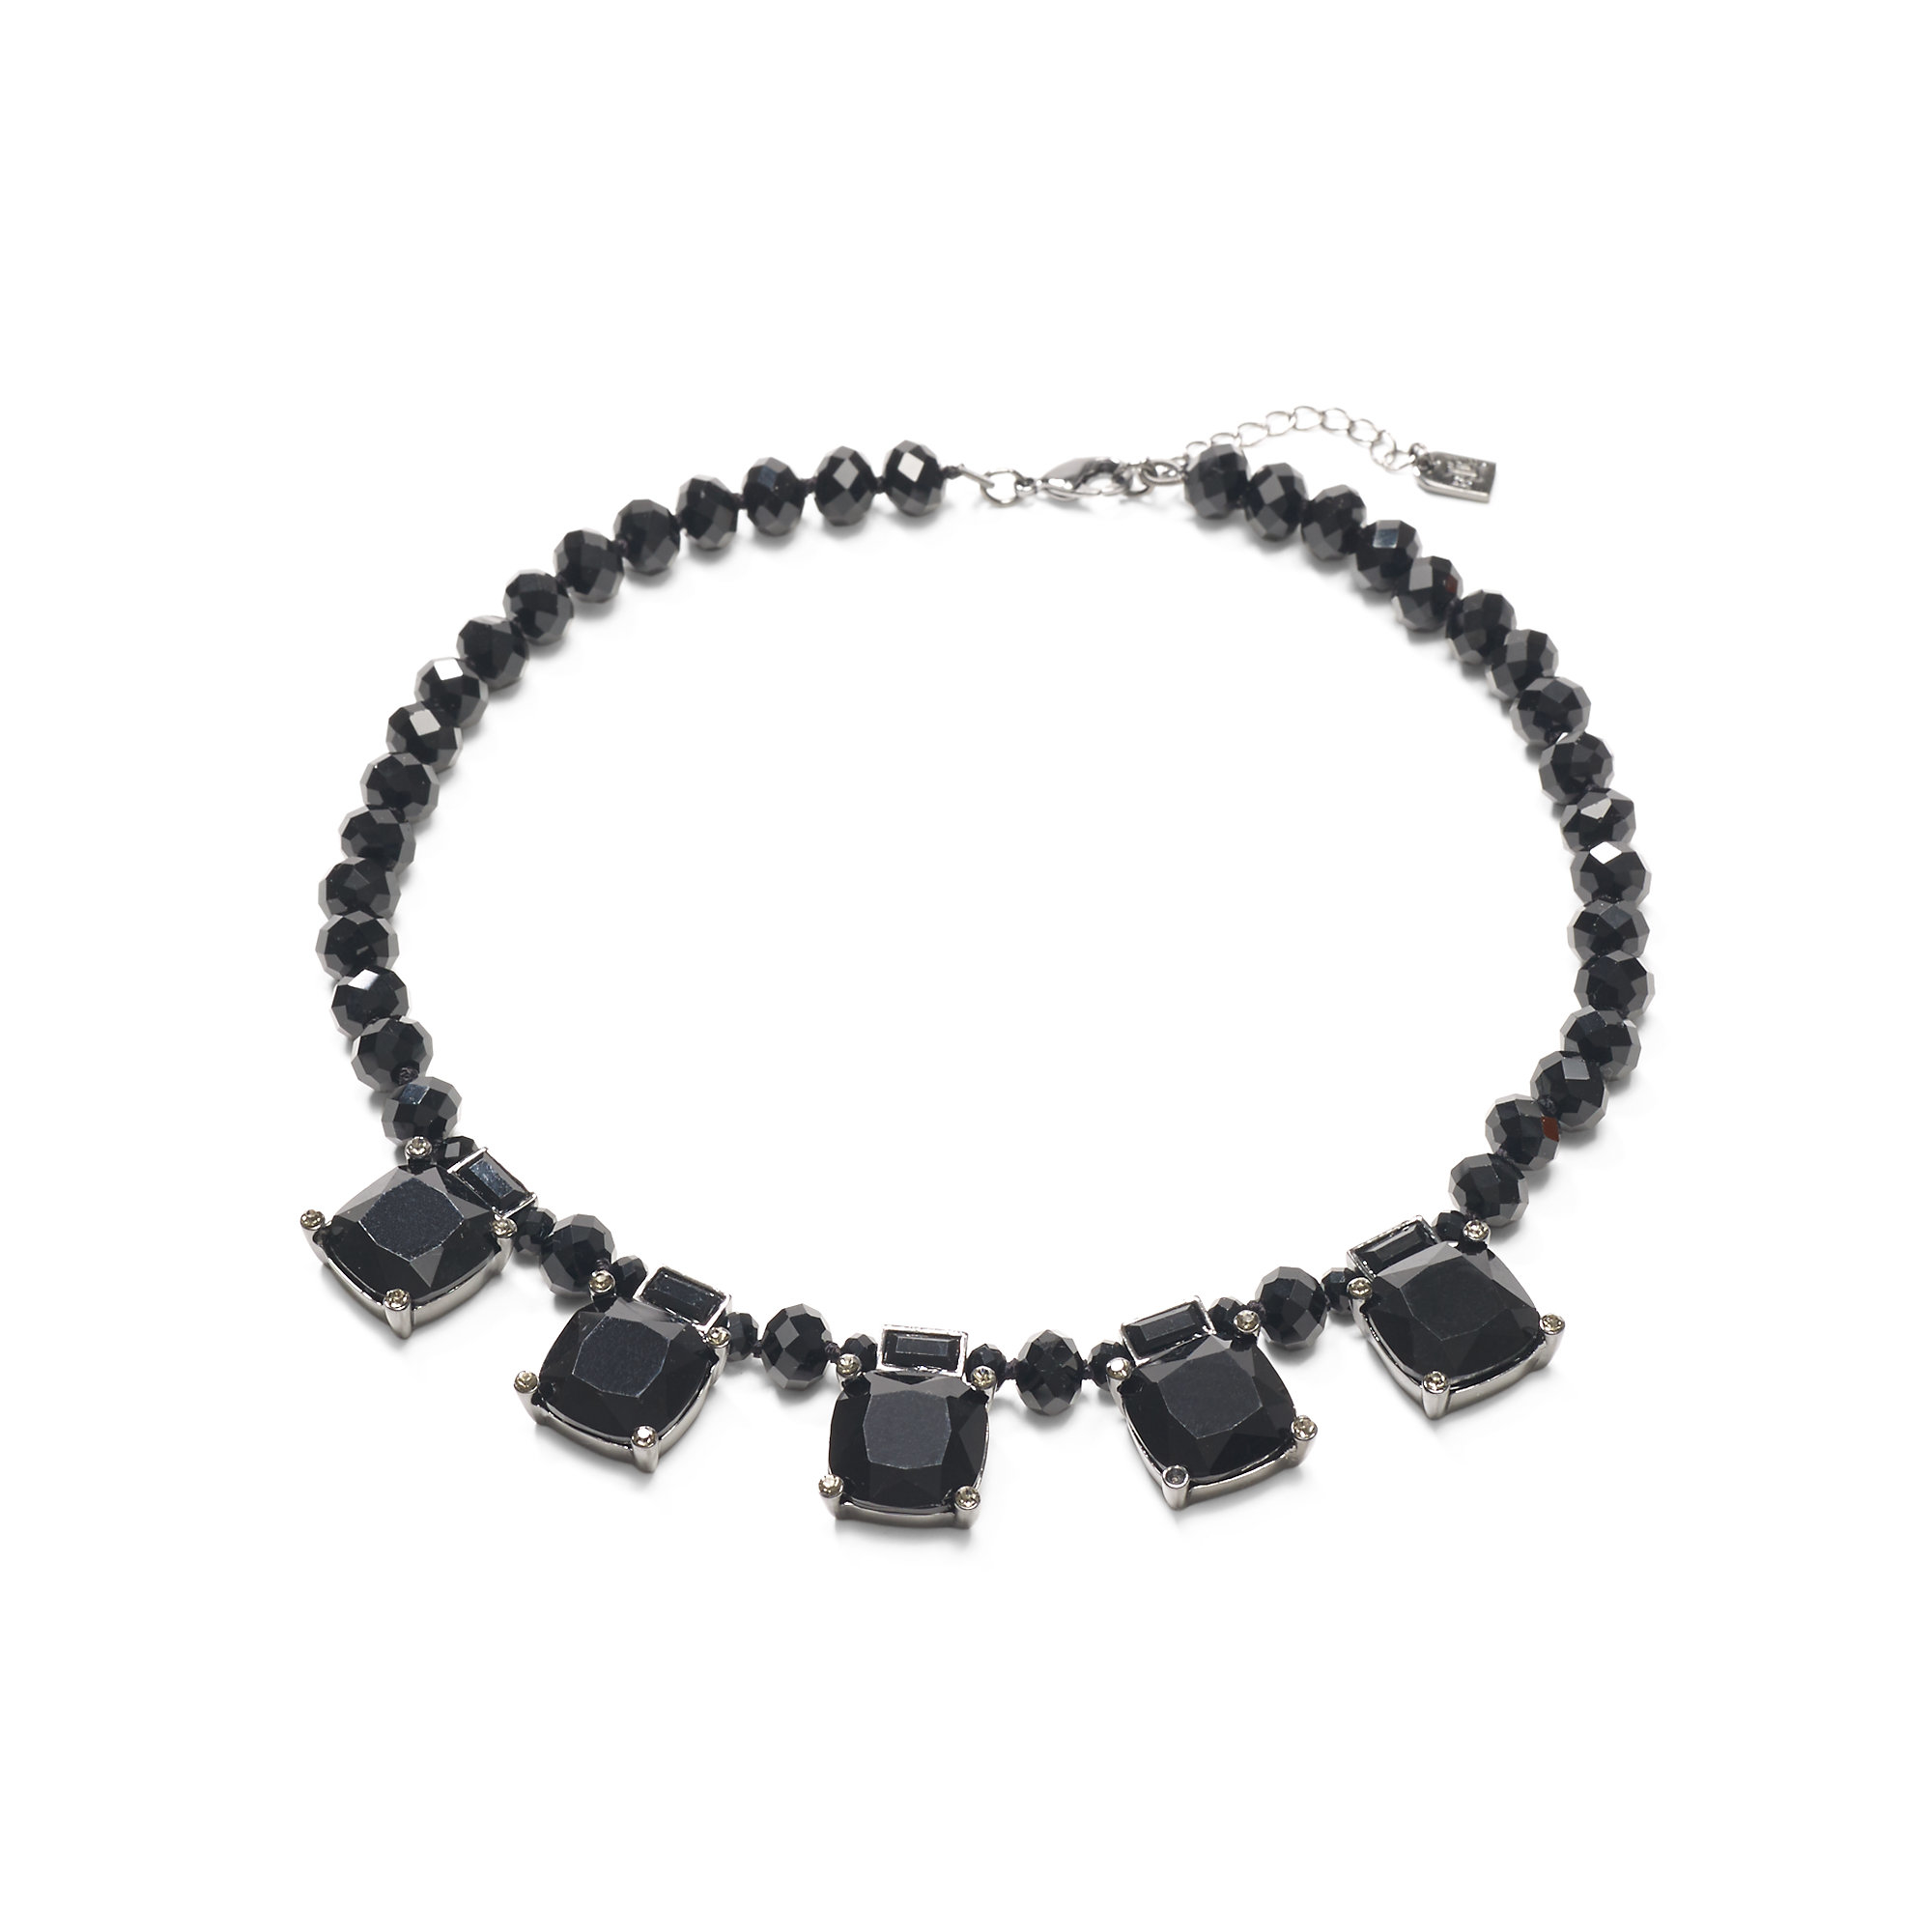 robert morris pav 233 nugget necklace necklaces ralph jet toned bib necklace in black lyst